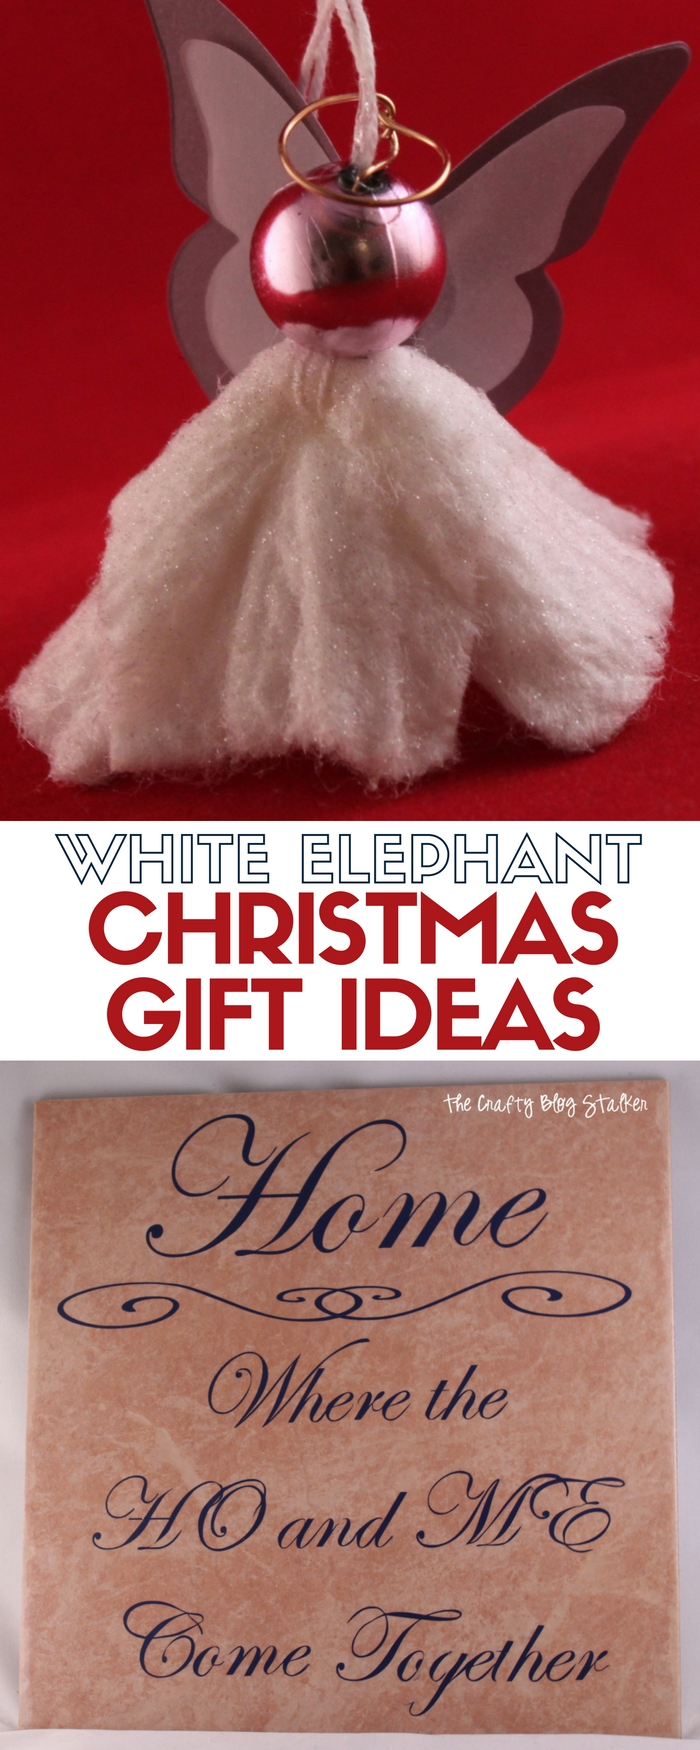 Diy white elephant gift exchange ideas the crafty blog stalker a white elephant gift exchange is a holiday family tradition here are a couple of negle Gallery